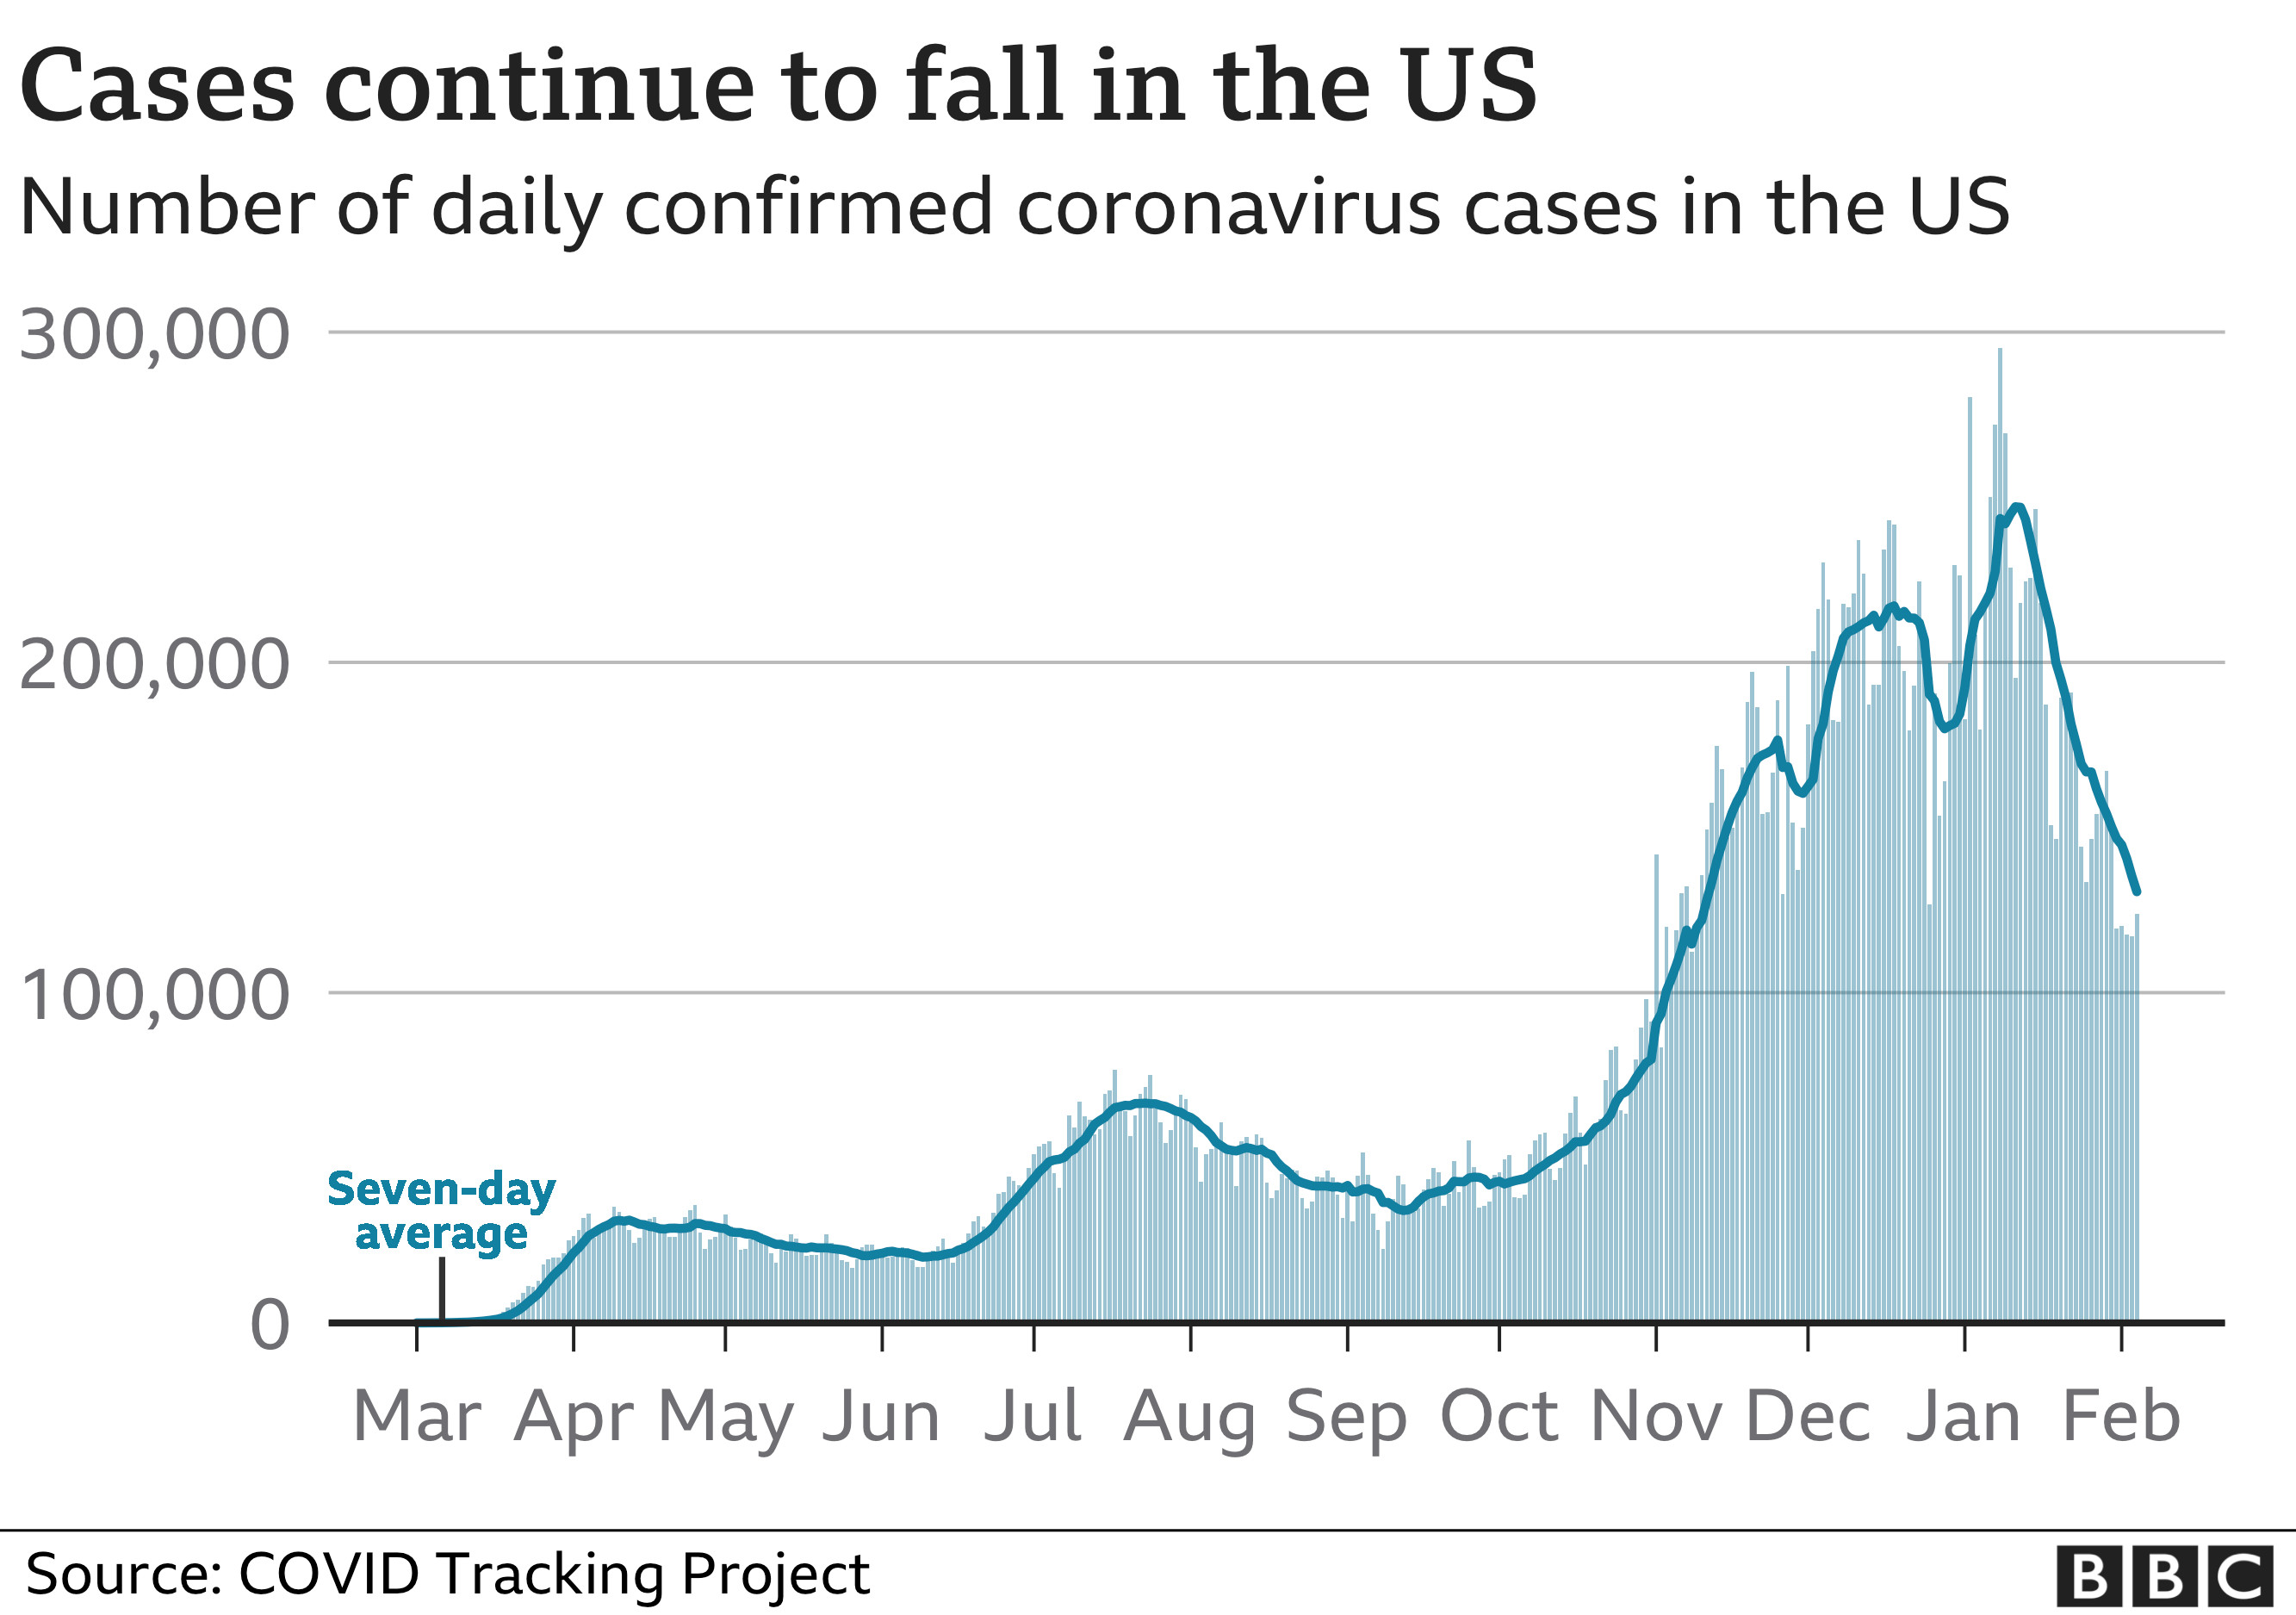 Chart showing the number of daily coronavirus cases in the US has been falling since the start of January